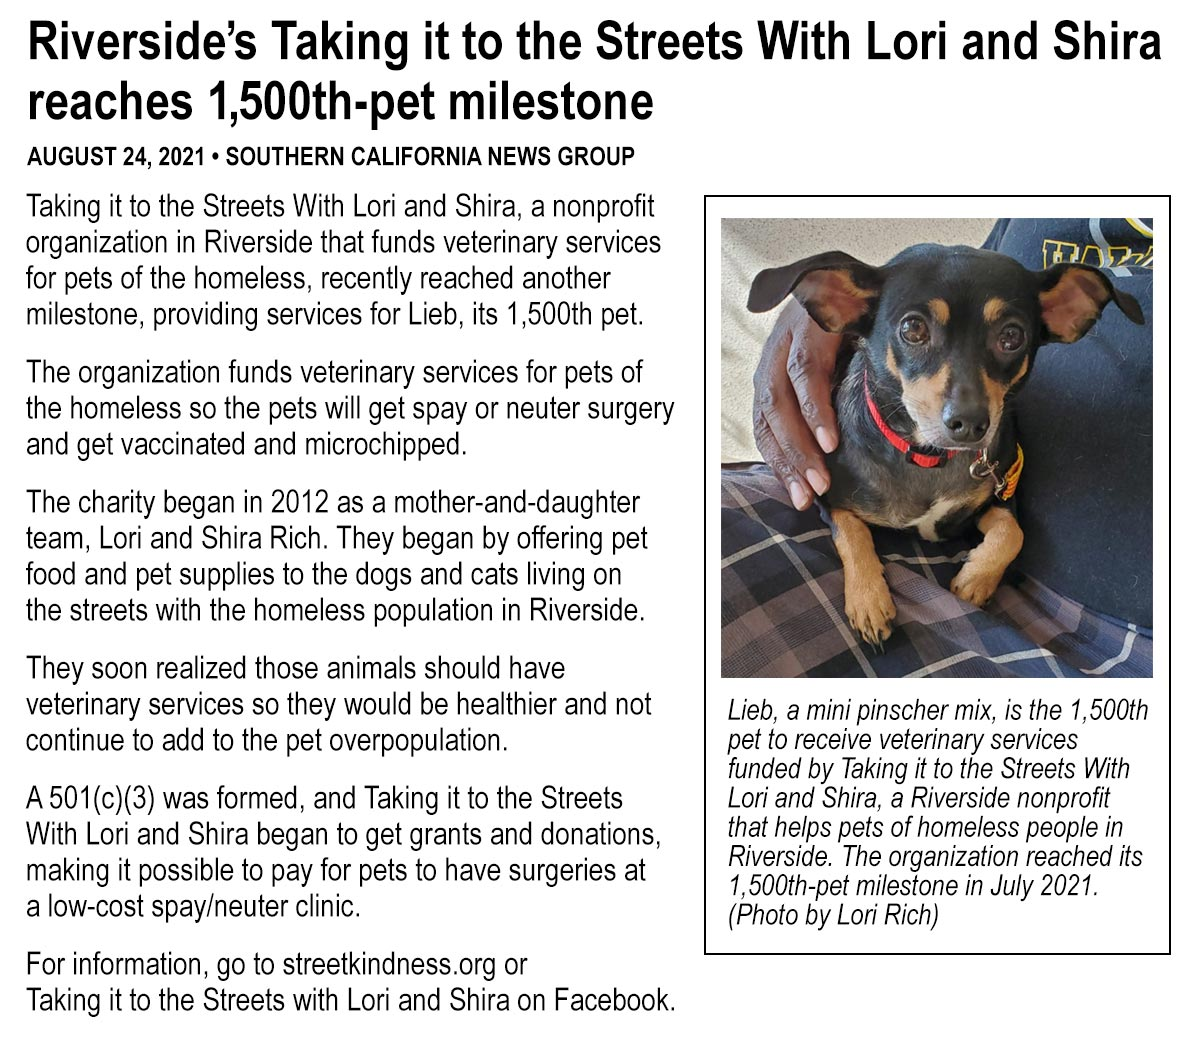 Riverside's Taking it to the Streets With Lori and Shira reaches 1,500th-pet milestone